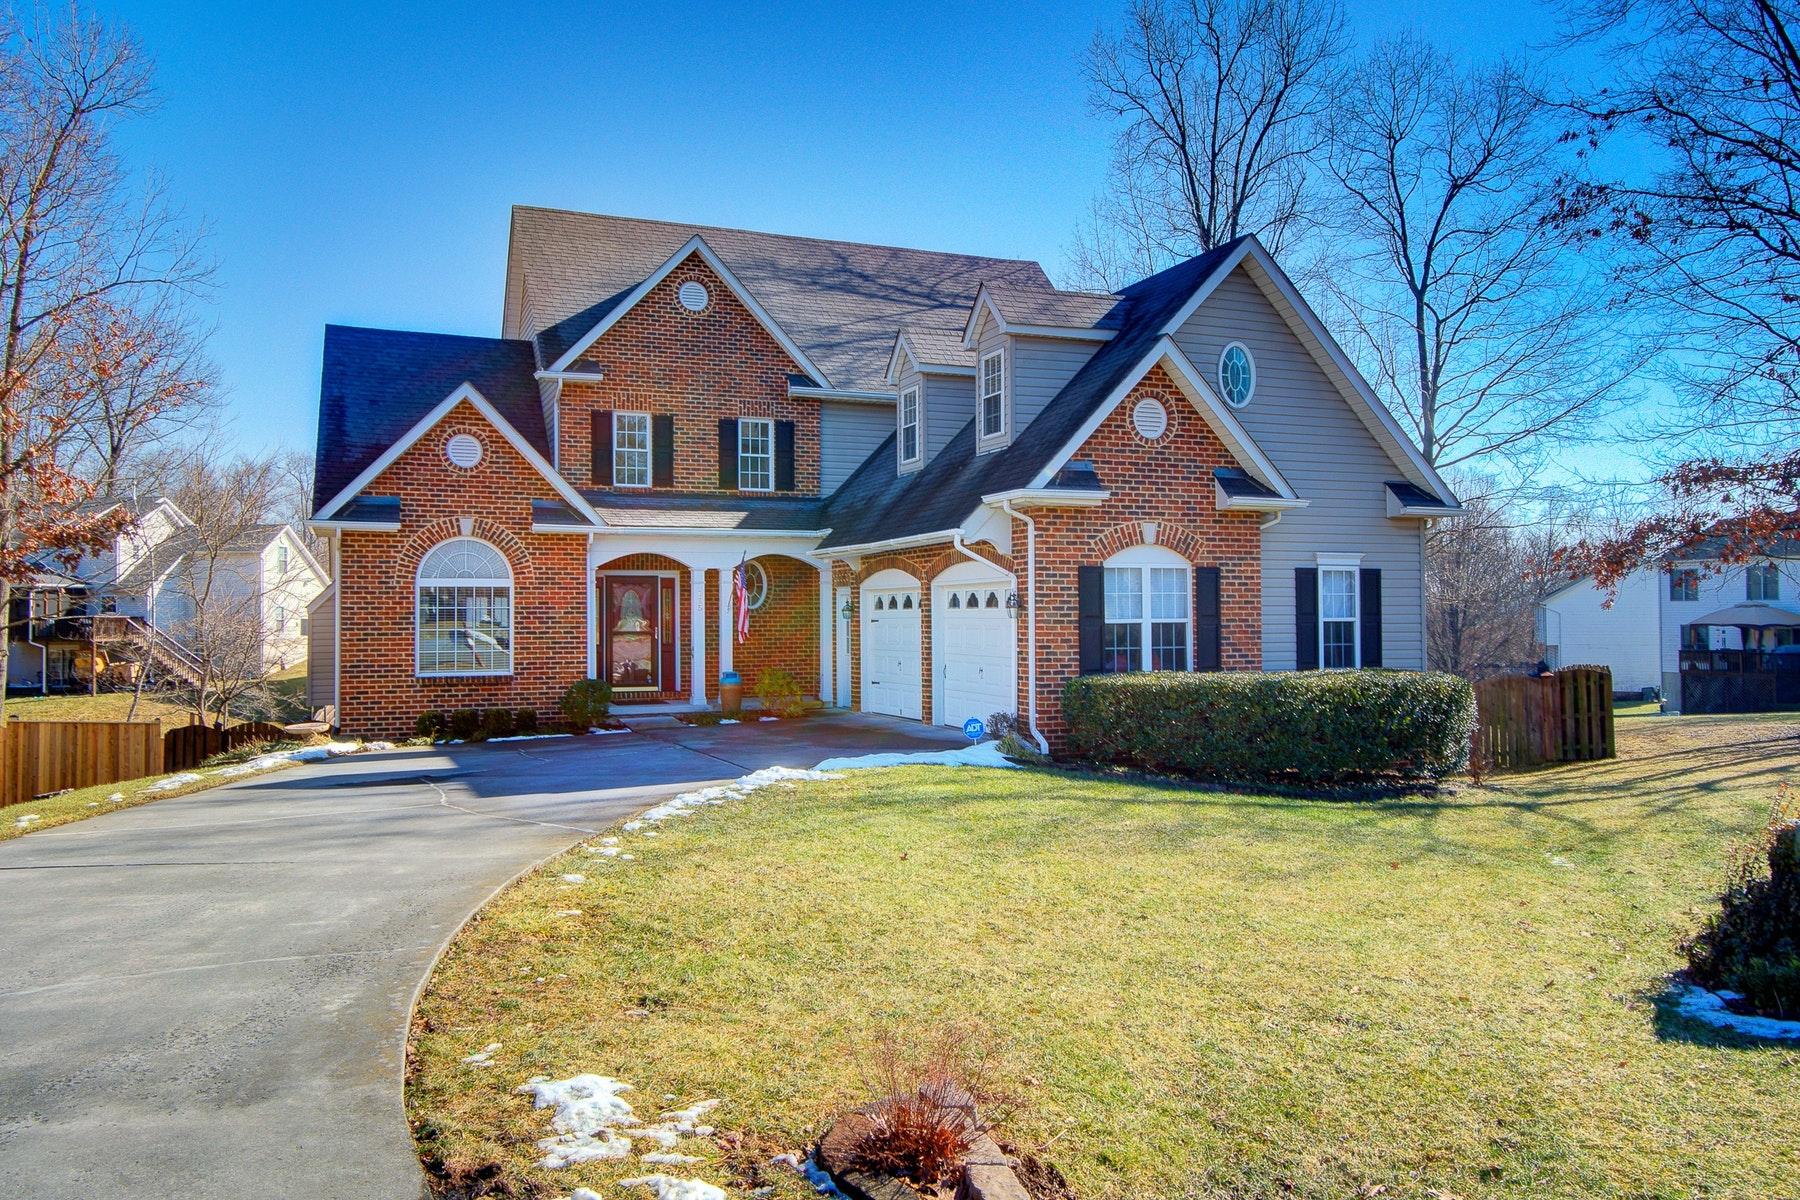 Single Family Home for Sale at 115 Cannon Circle 115 Cannon Circle Winchester, Virginia 22062 United States